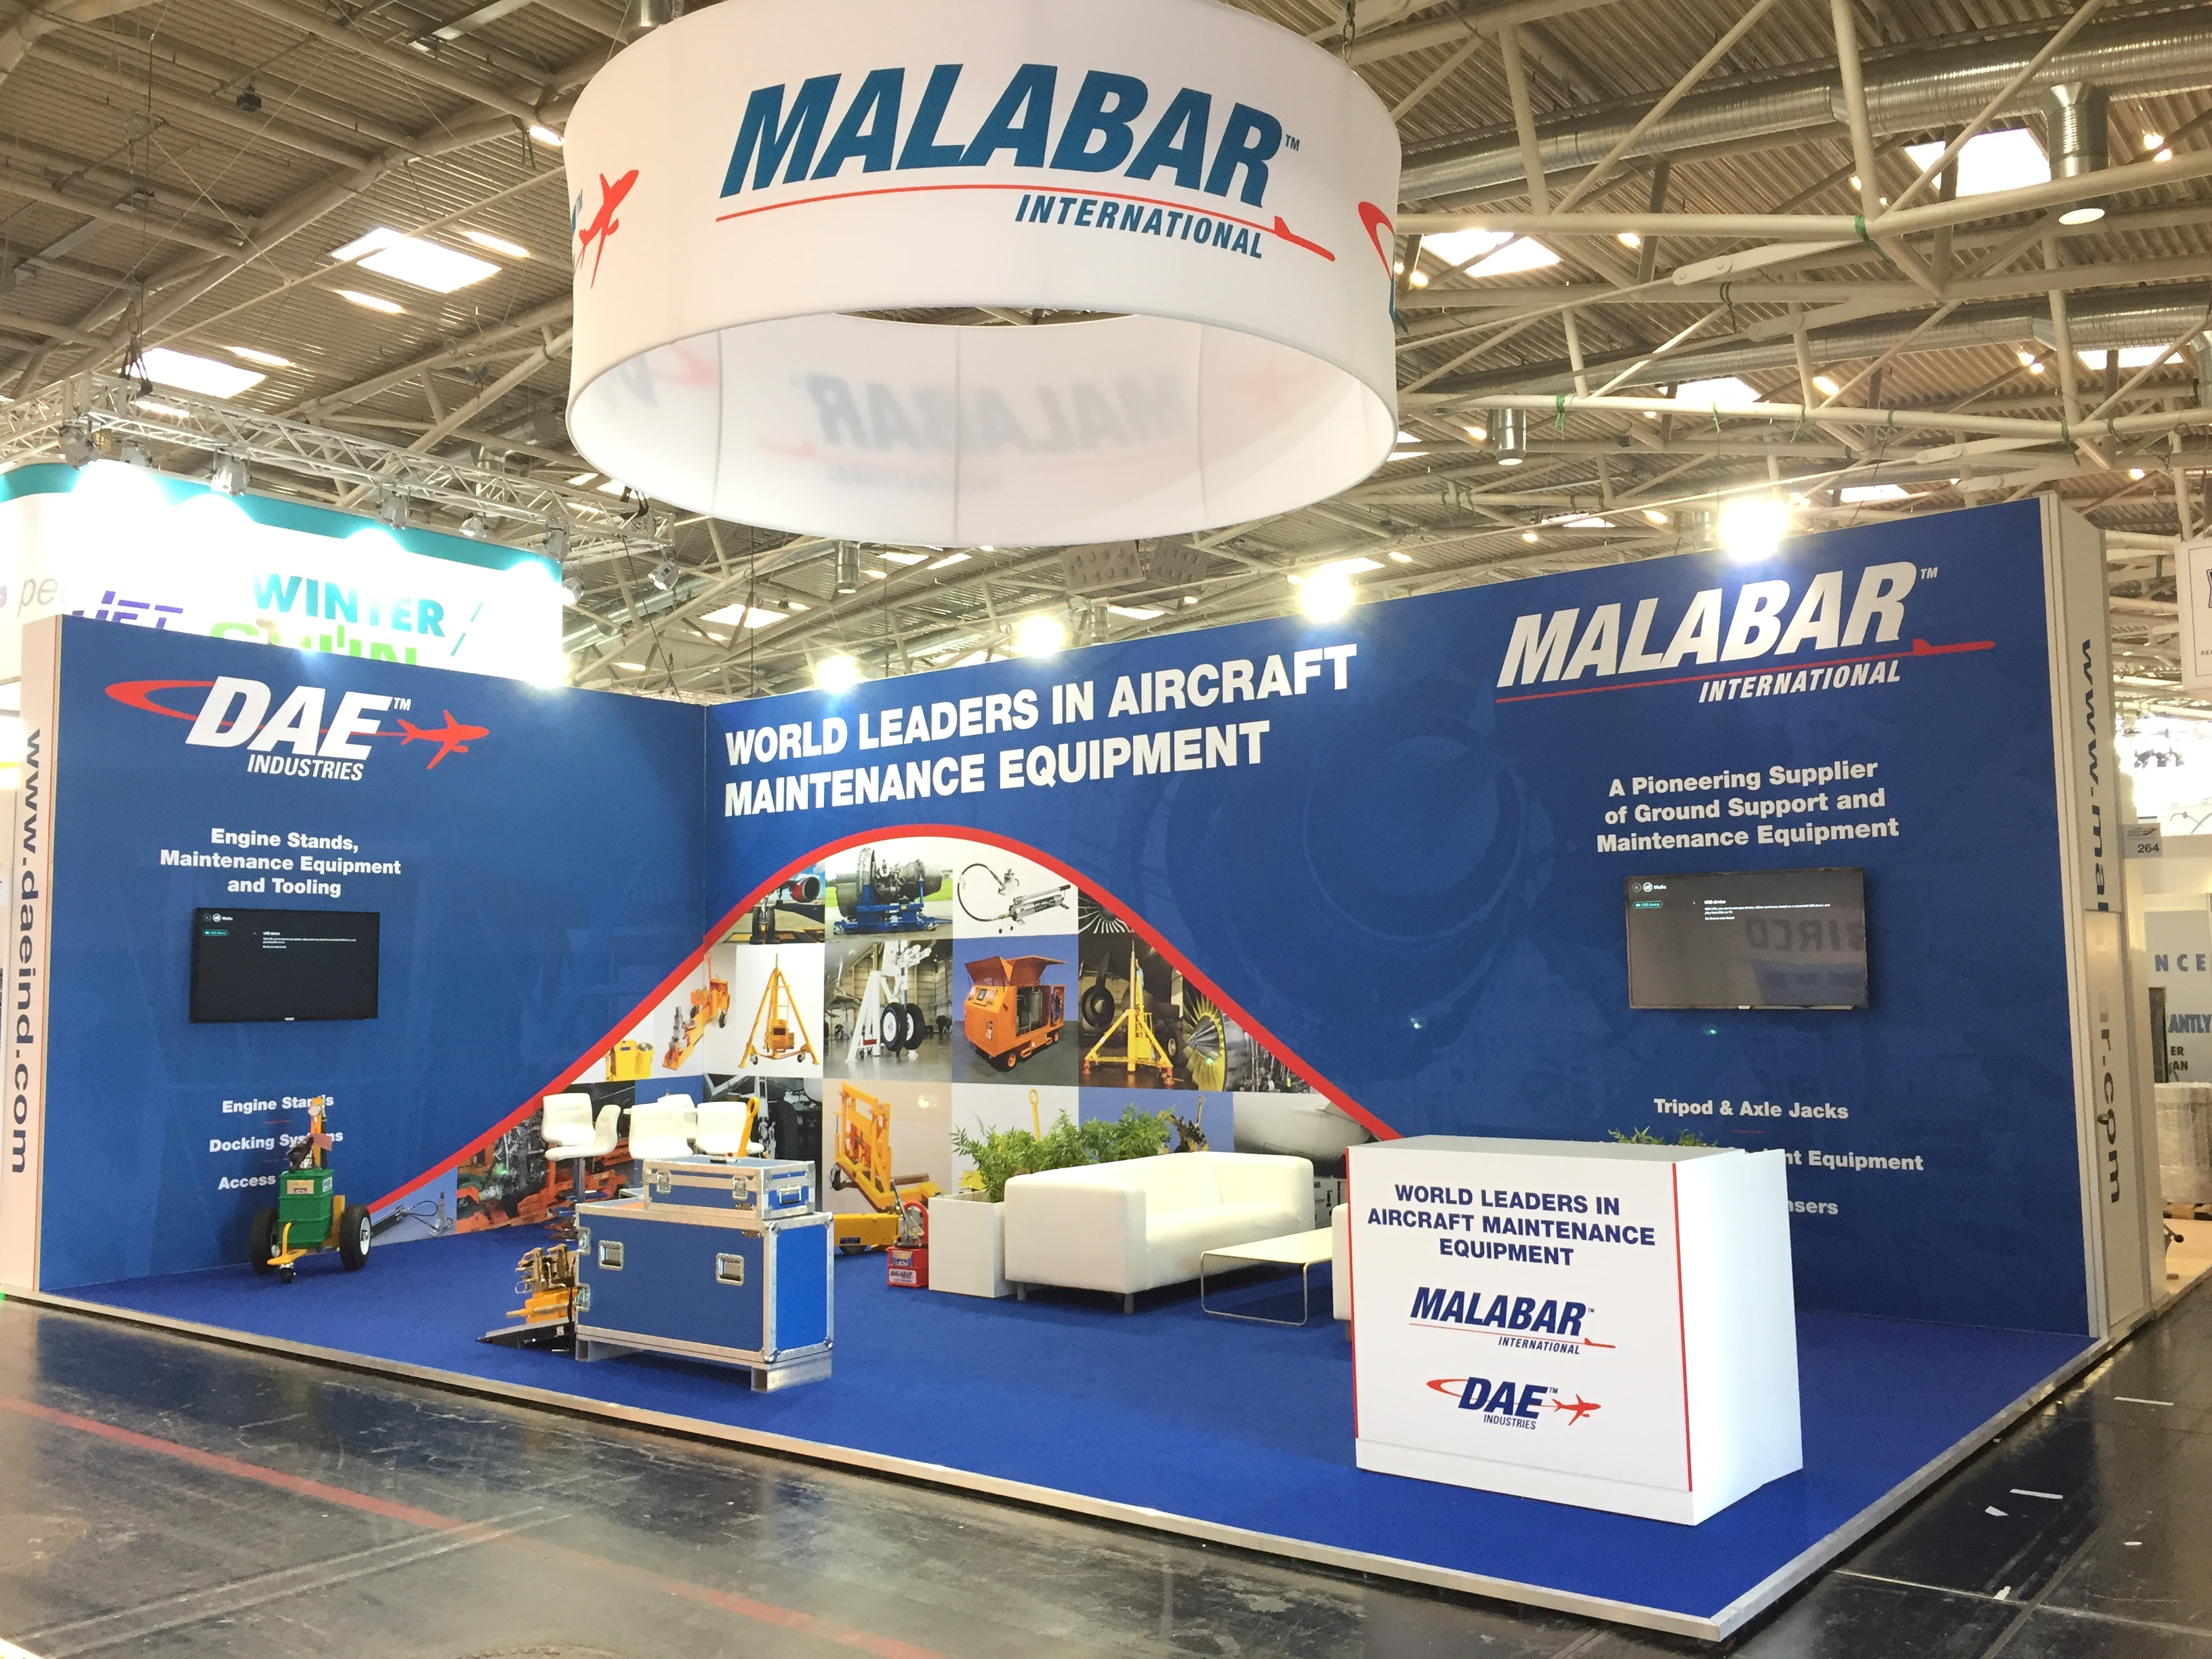 Malabar exhibition stand 10m x 65m at interairport 2017 malabar exhibition stand 10m x 65m at interairport 2017 malvernweather Image collections